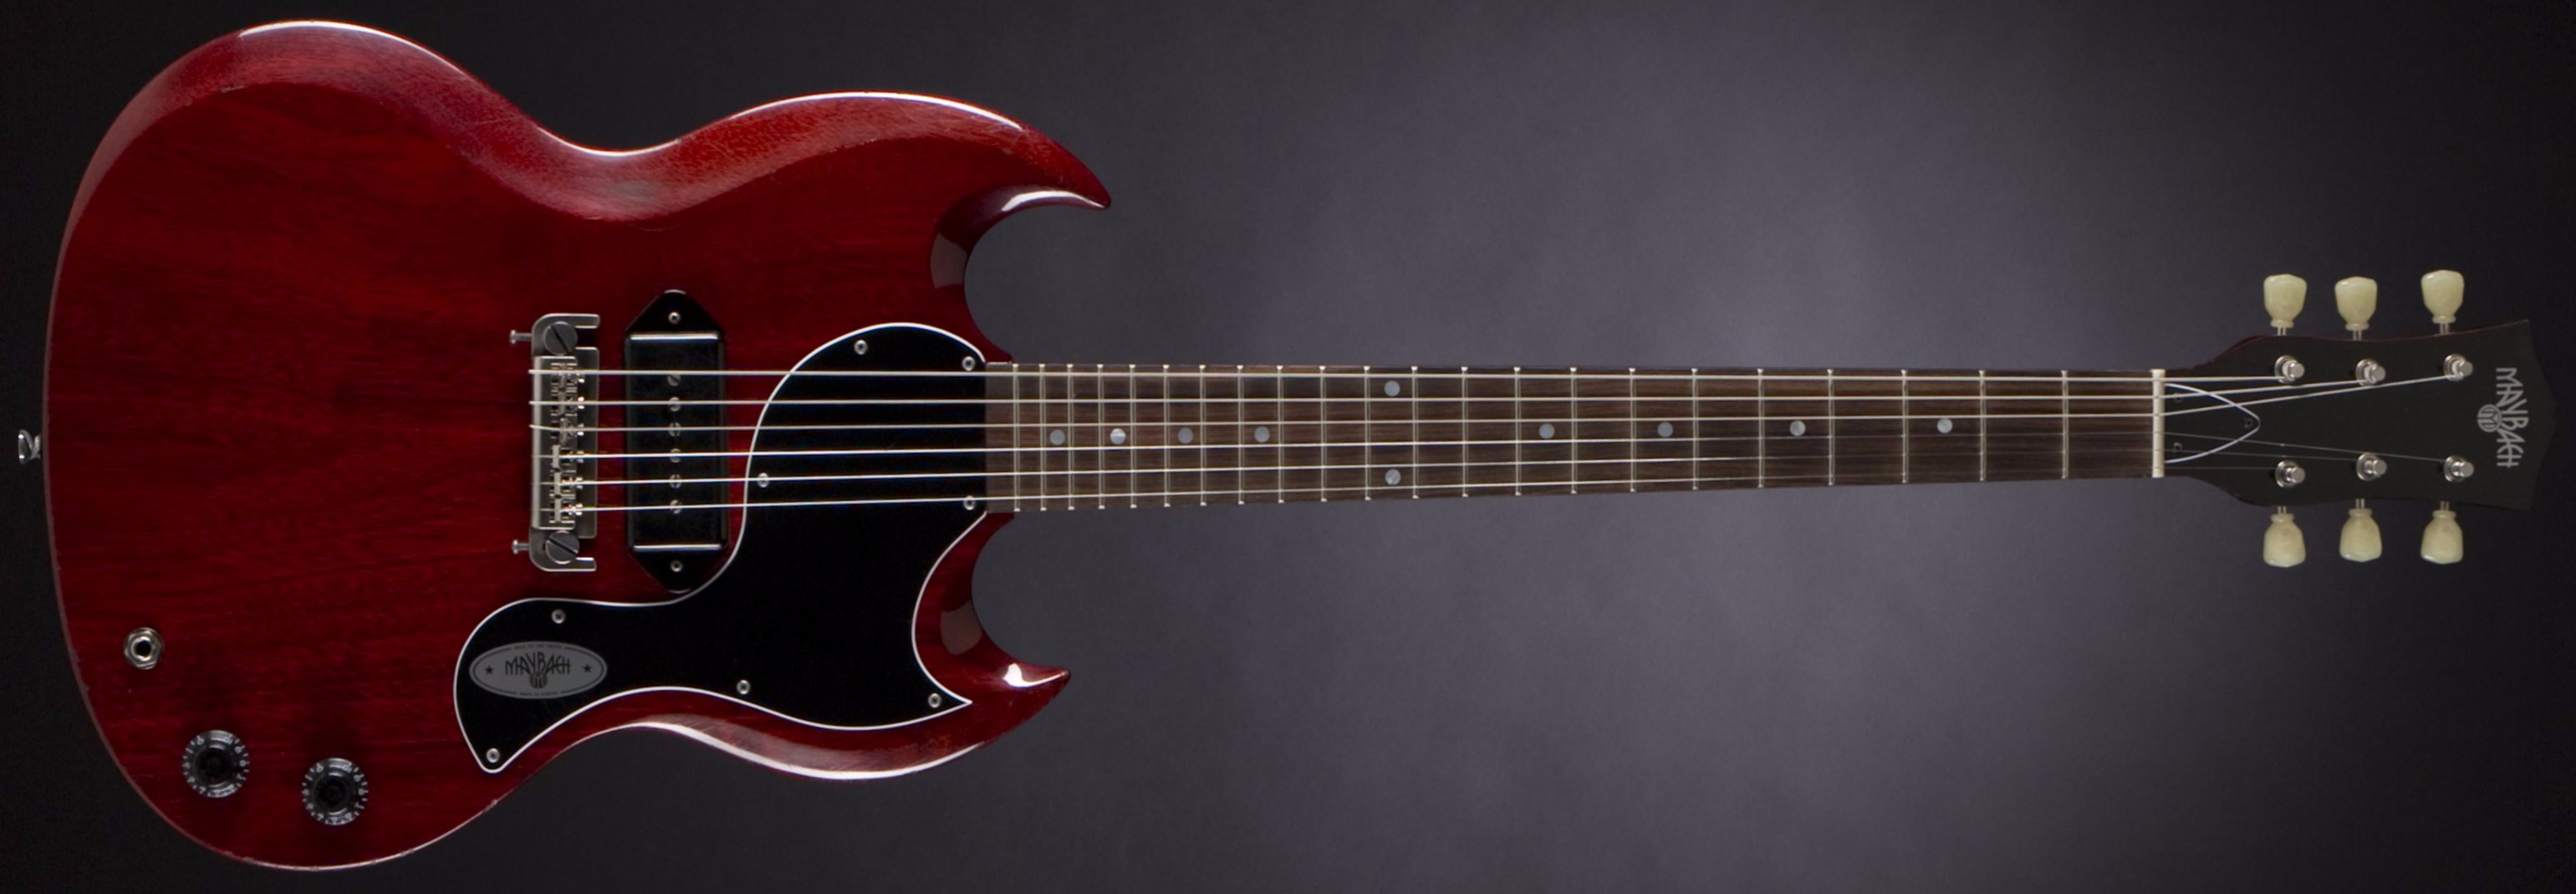 maybach albatroz '65 dark winered aged - music store professional